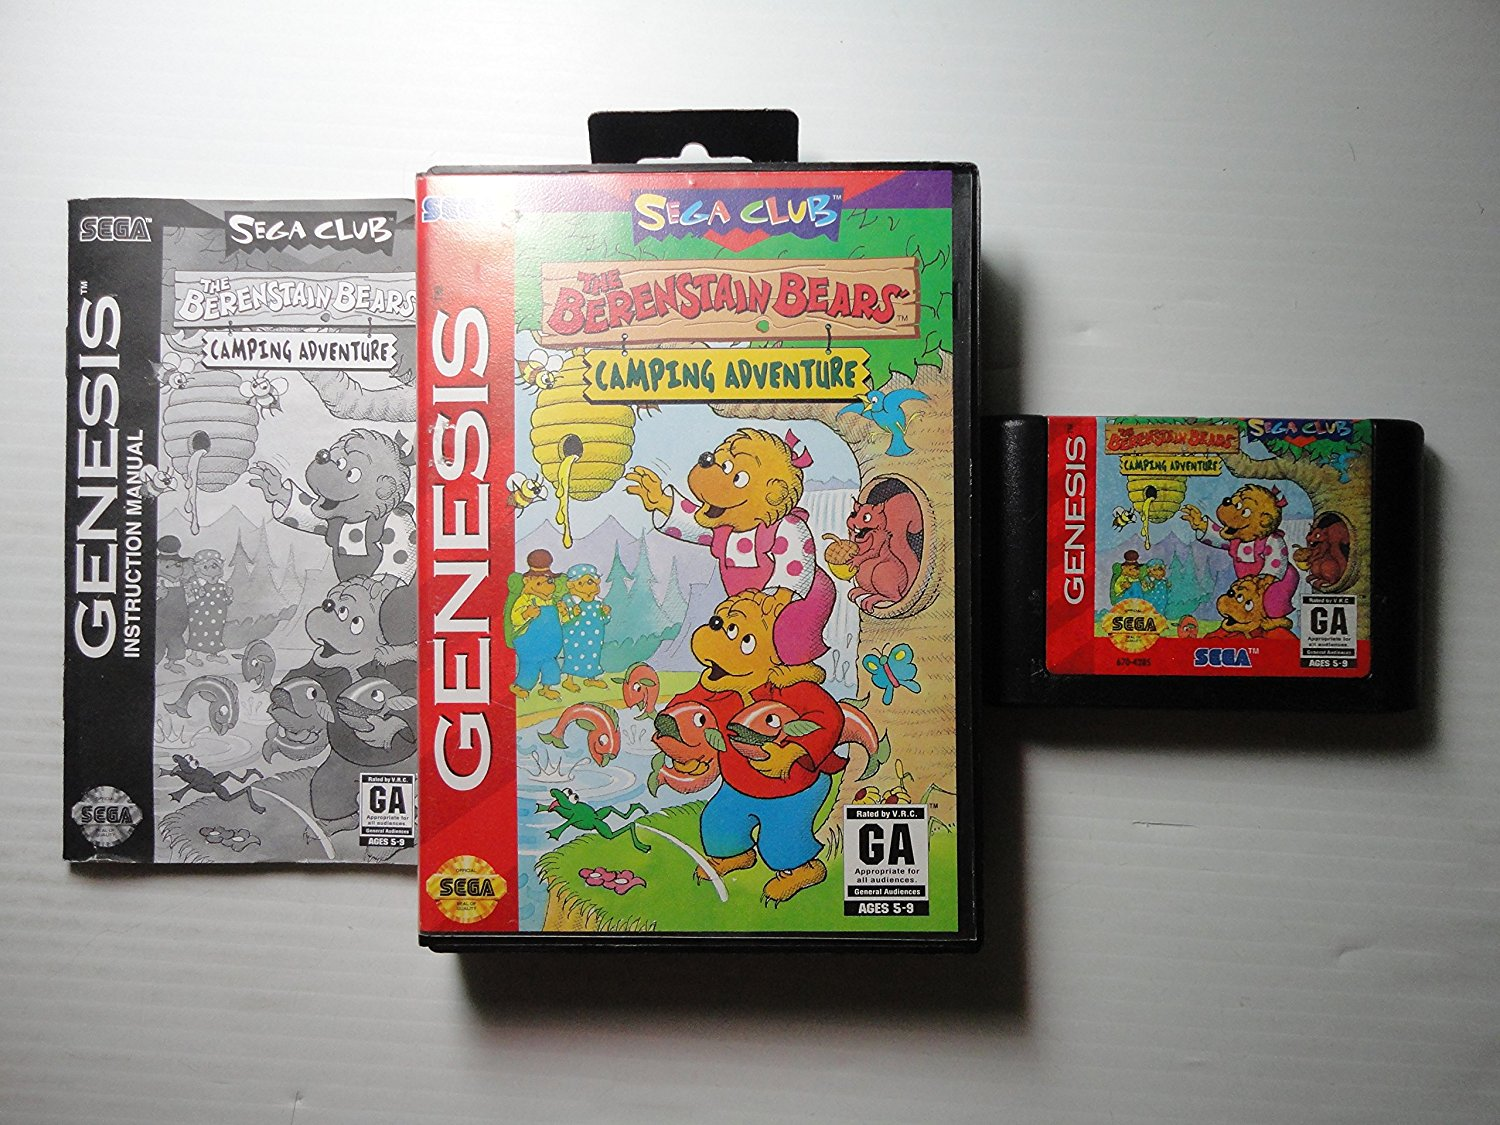 SG: BERENSTAIN BEARS; THE: CAMPING ADVENTURE (COMPLETE)